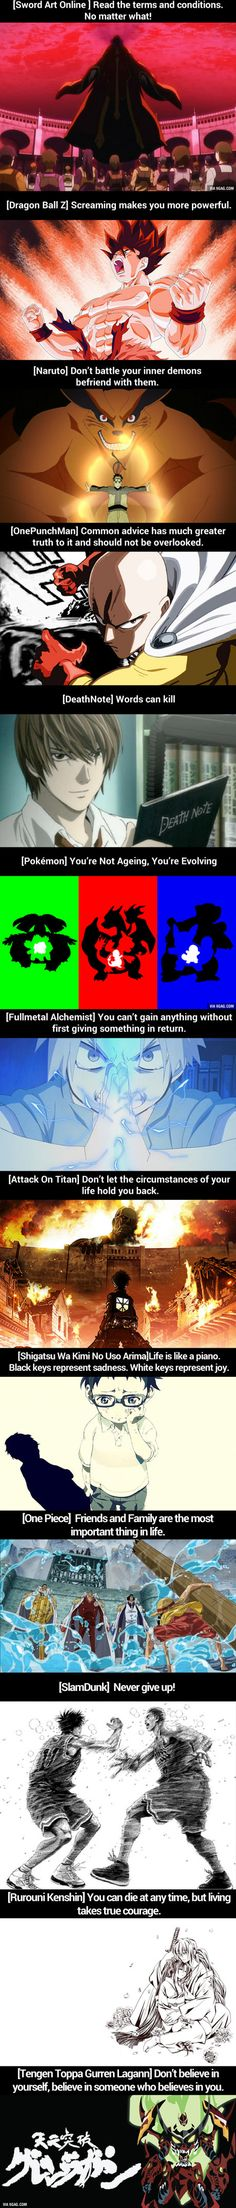 What is the best lesson you learnt from anime